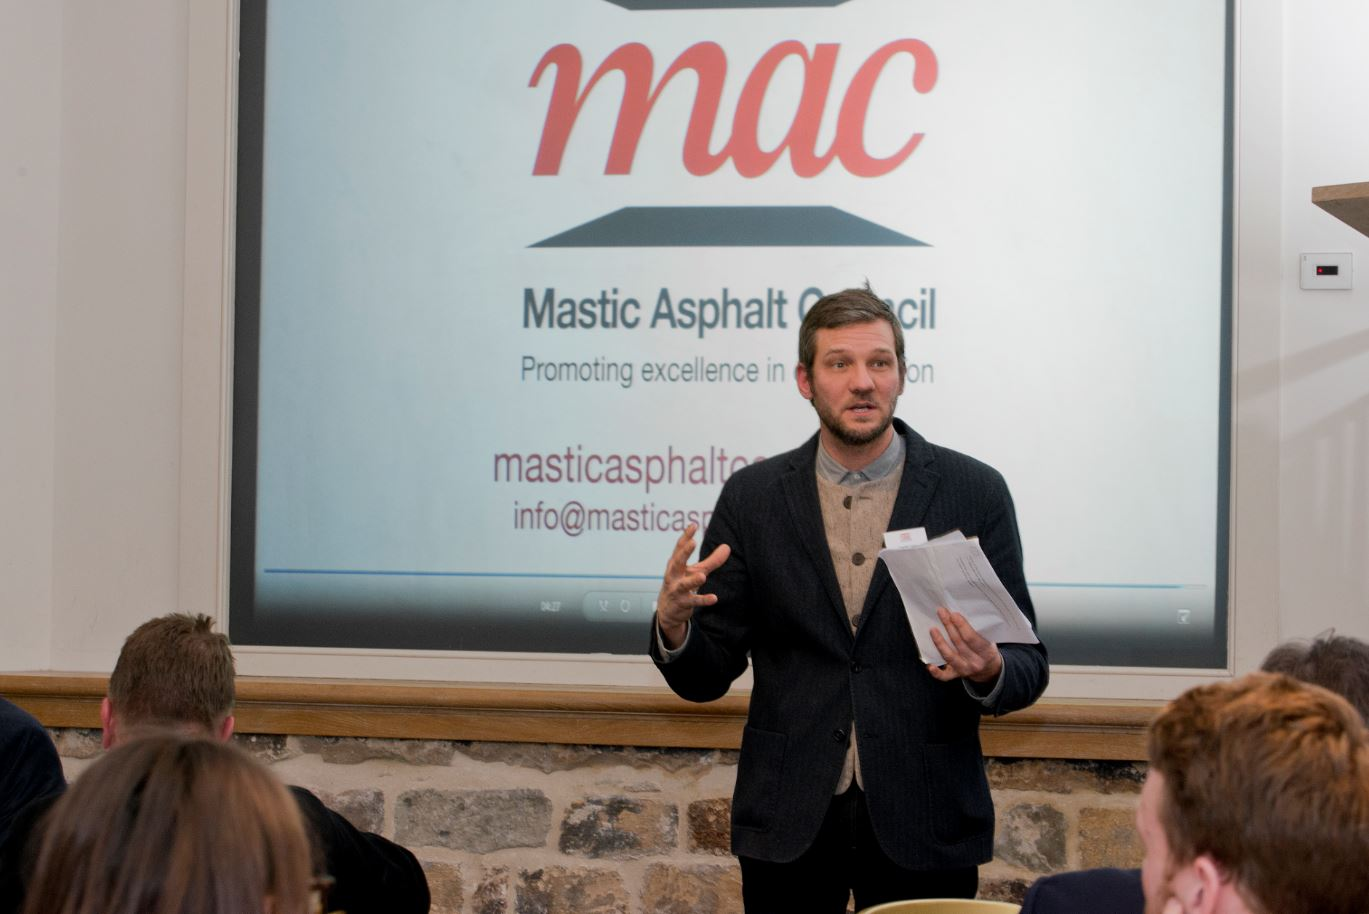 Mastic Asphalt Council Hosts Event to Celebrate the Use of Mastic Asphalt in Modern Construction